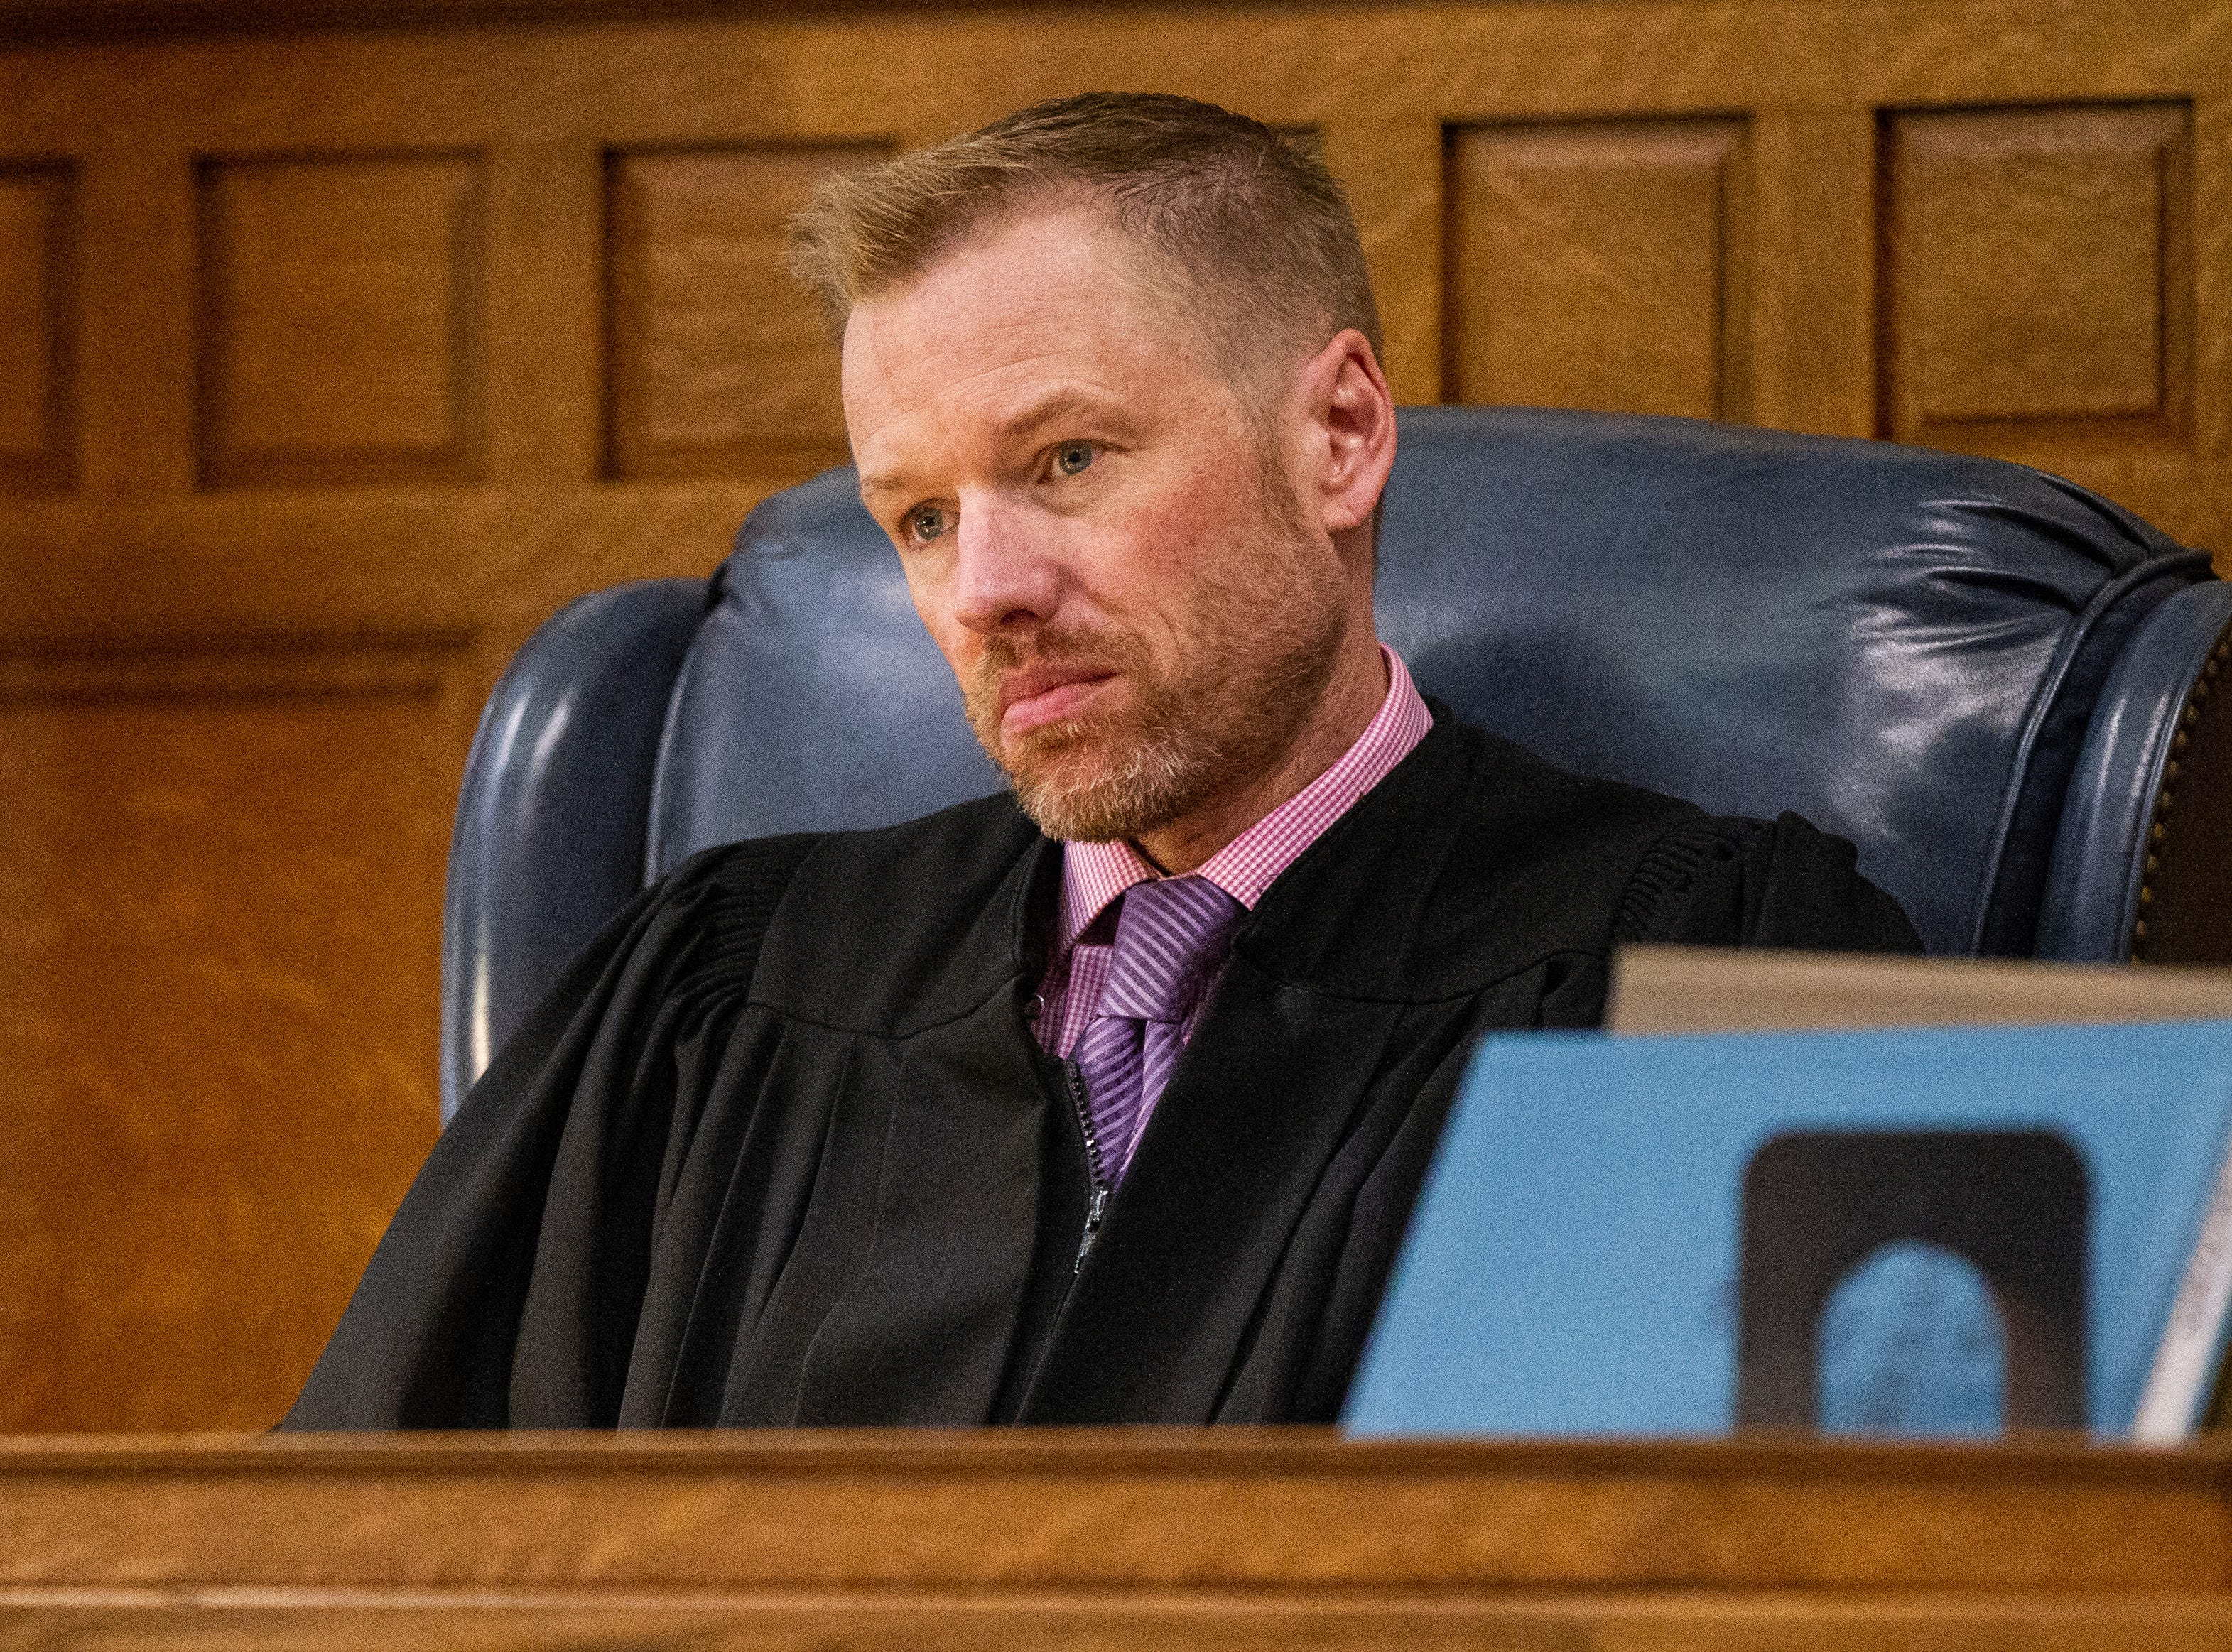 Judge Lars G. Anderson listens during a pre-trial hearing for Curtis Jones on Wednesday, Sept. 26, 2018, at the Johnson County Courthouse in Iowa City.